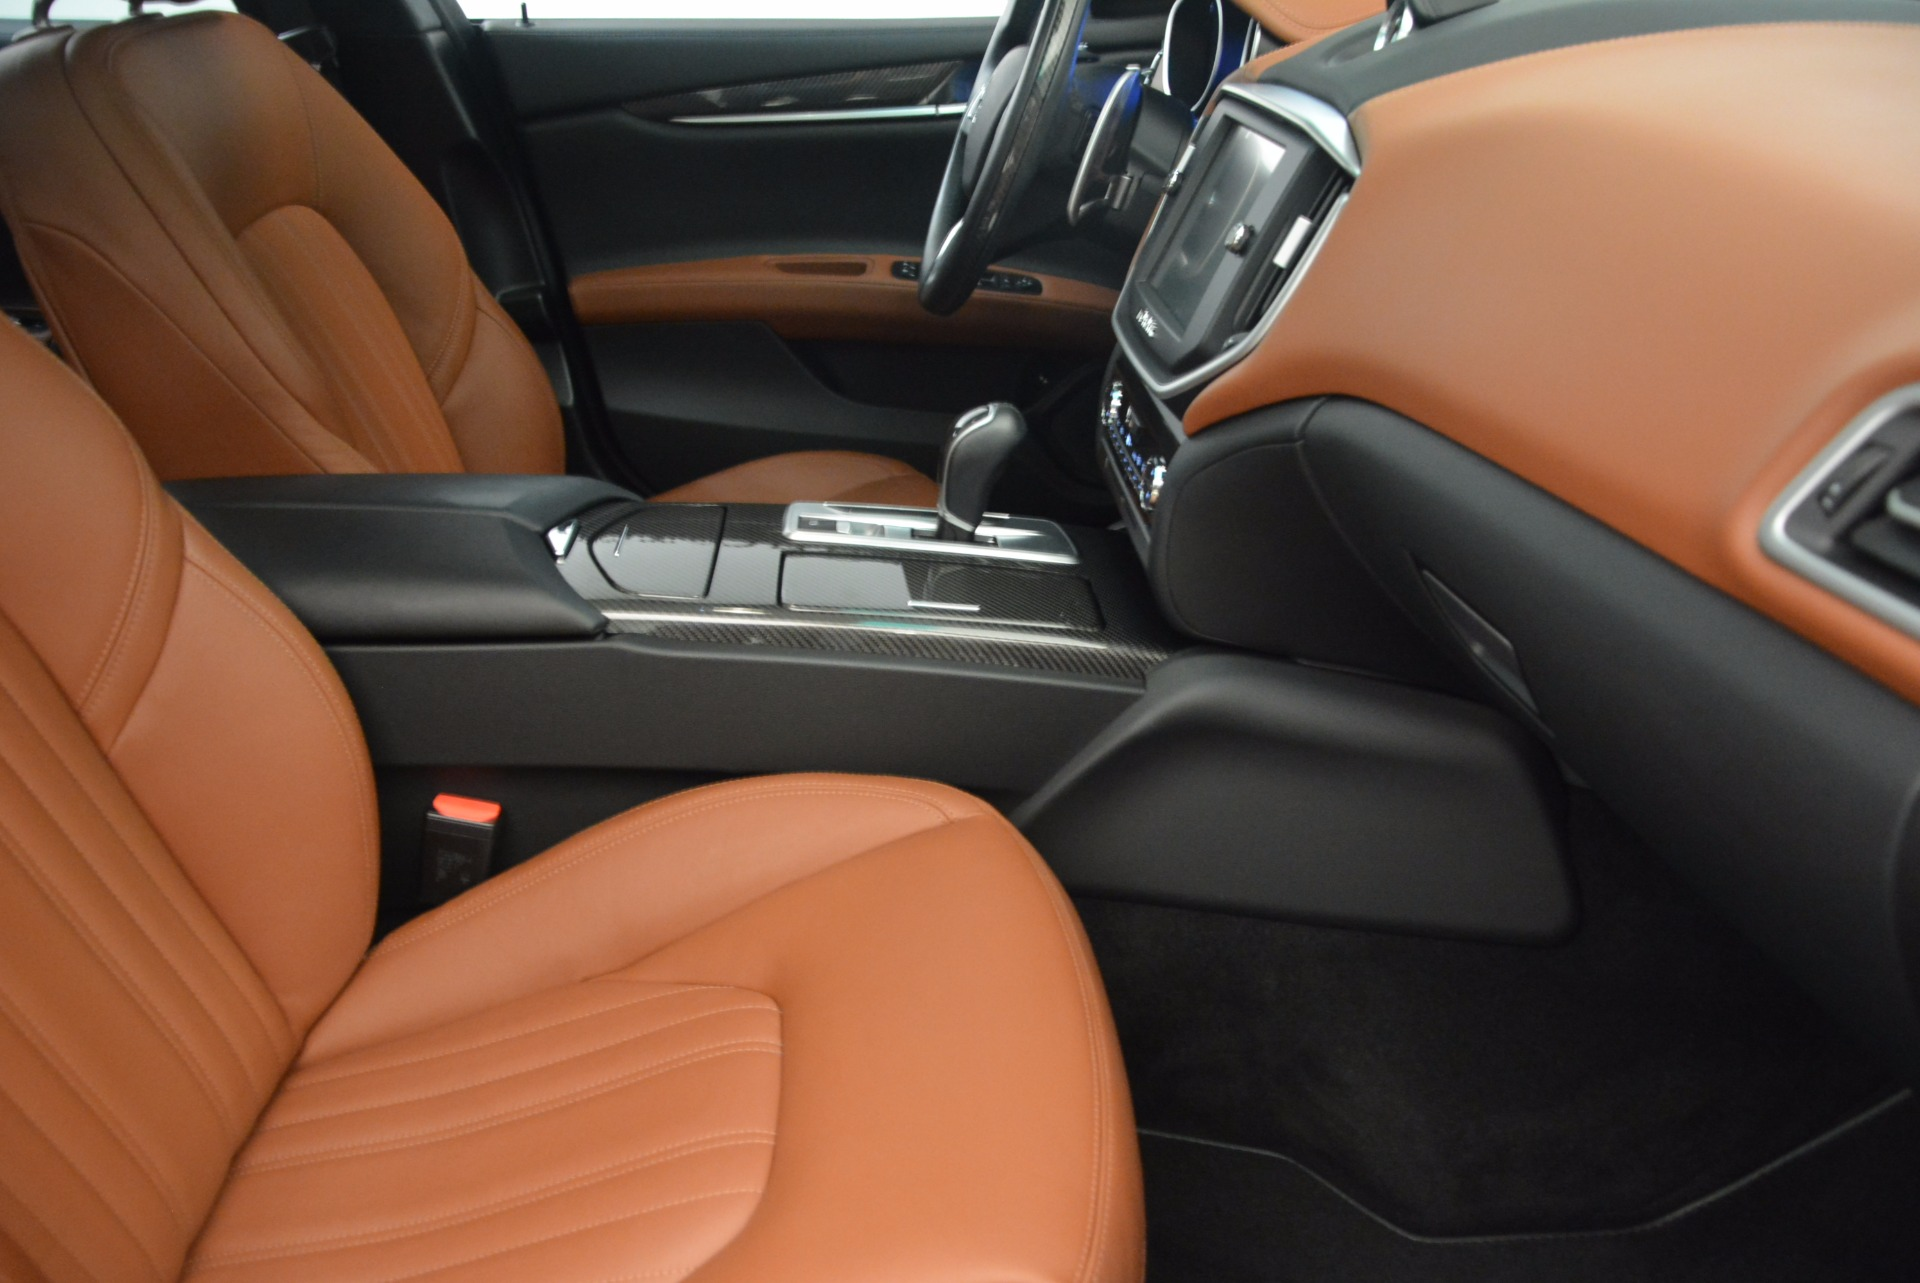 Used 2014 Maserati Ghibli S Q4 For Sale In Greenwich, CT 1587_p24